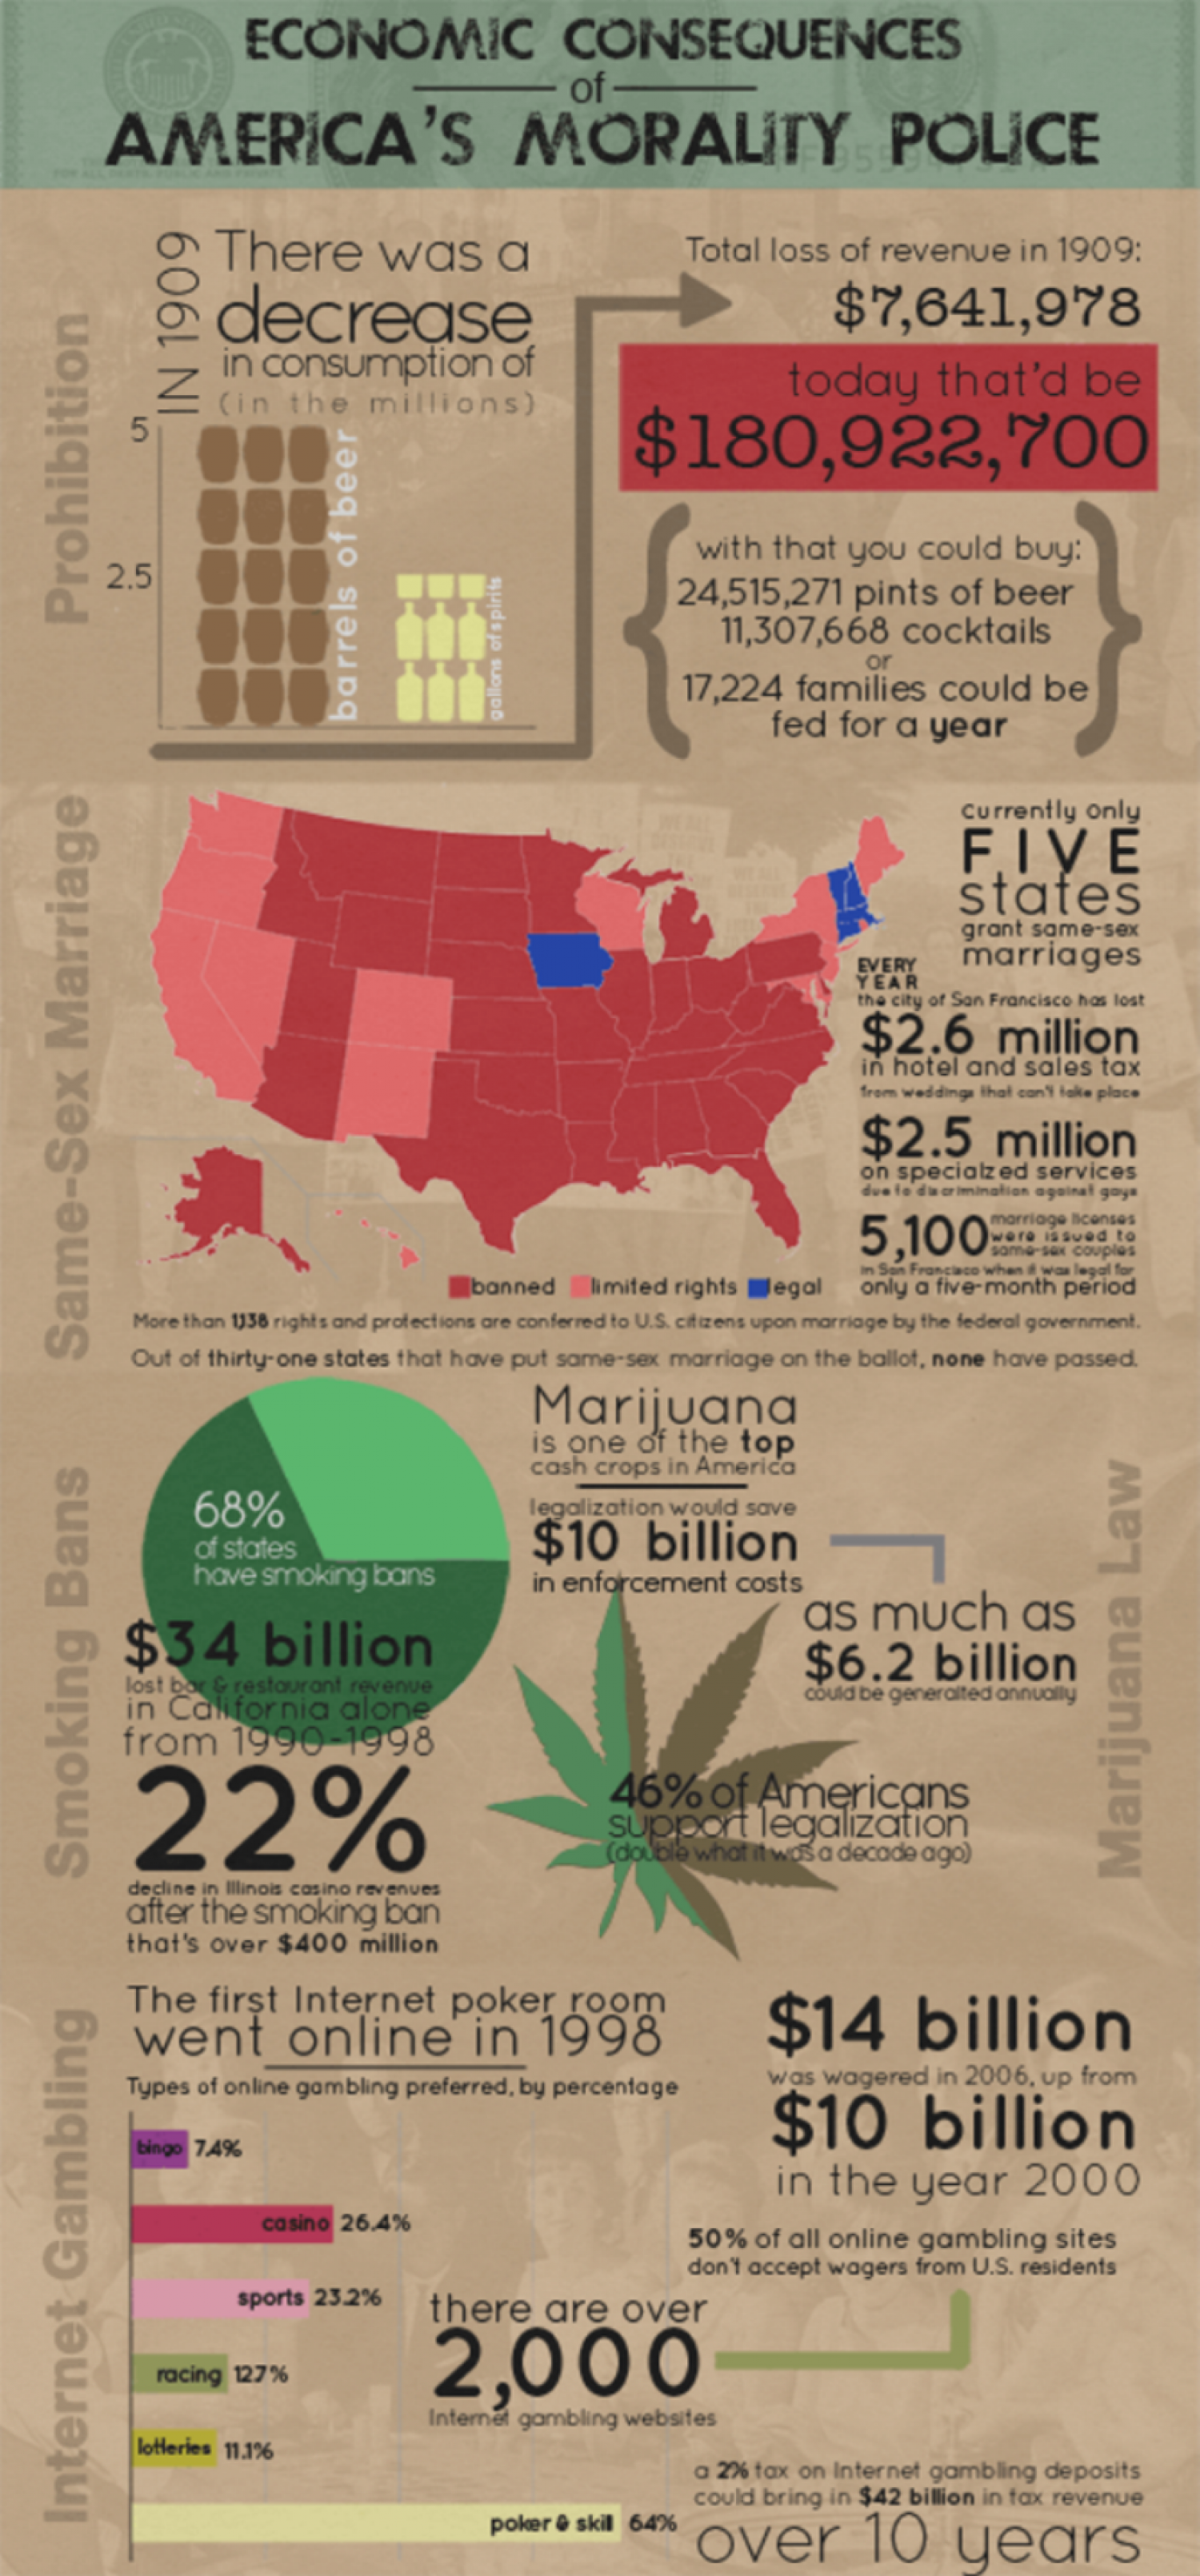 Economic Consequences Of Americas Morality Police Infographic